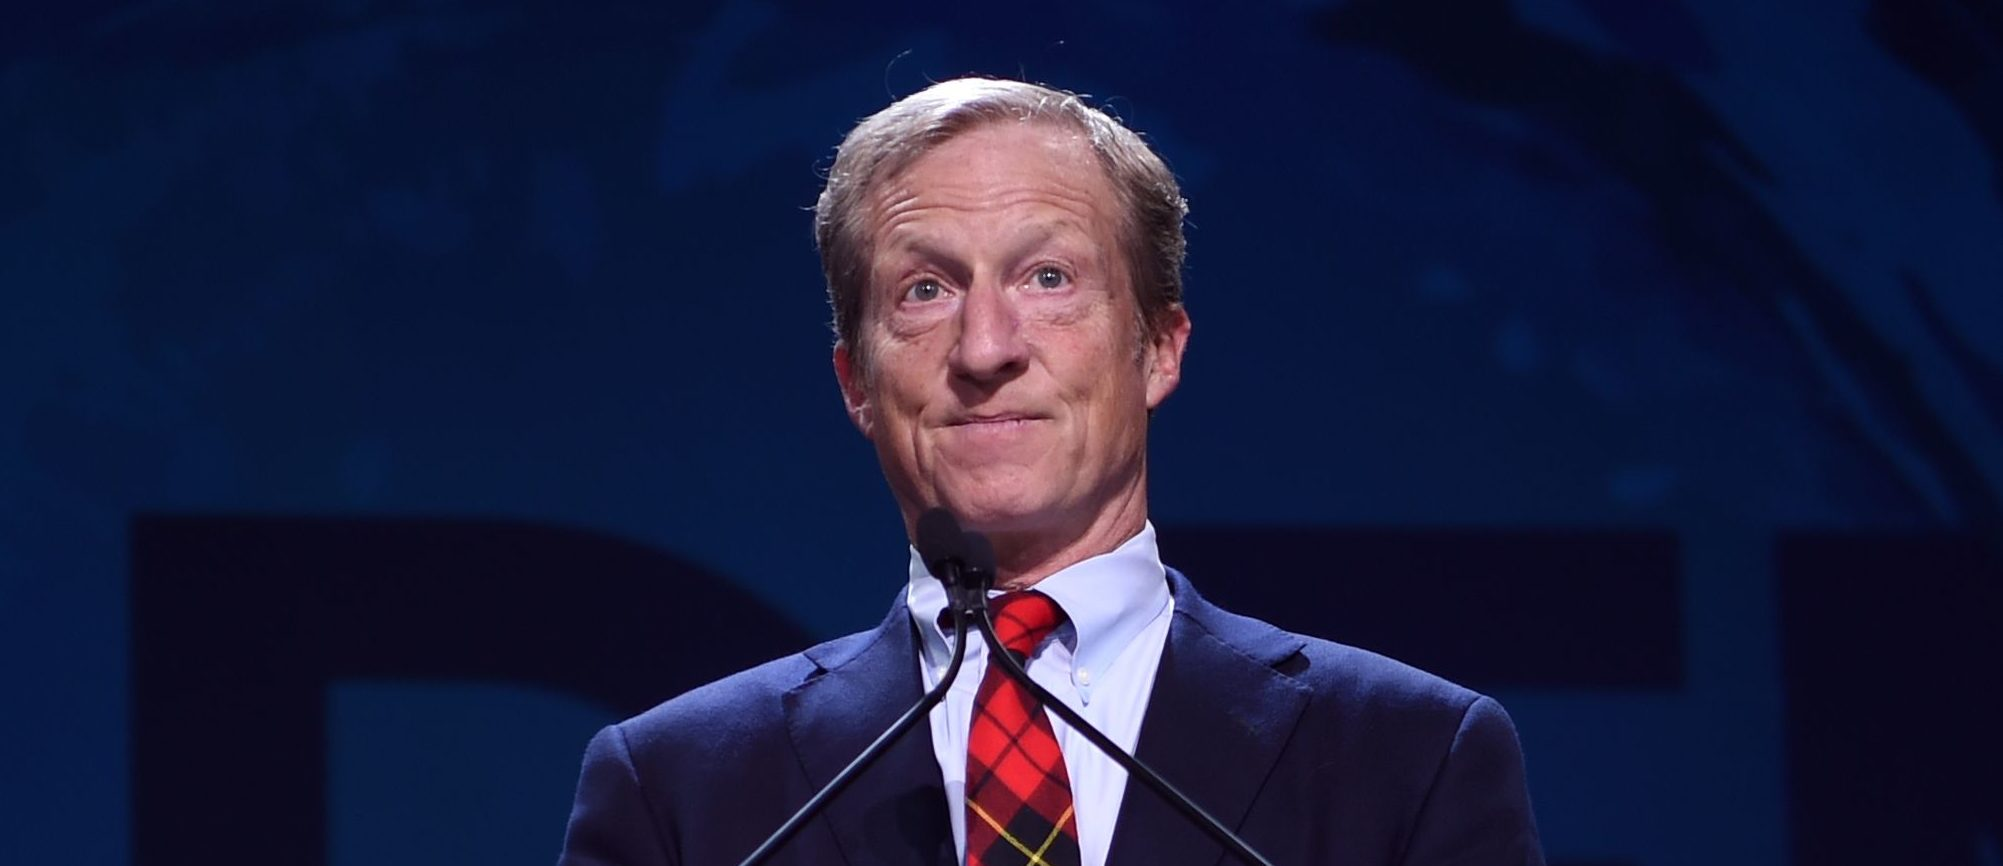 US philanthropist Tom Steyer speaks on stage during the 2019 California Democratic Party State Convention at Moscone Center in San Francisco, California on June 1, 2019. (JOSH EDELSON/AFP/Getty Images)